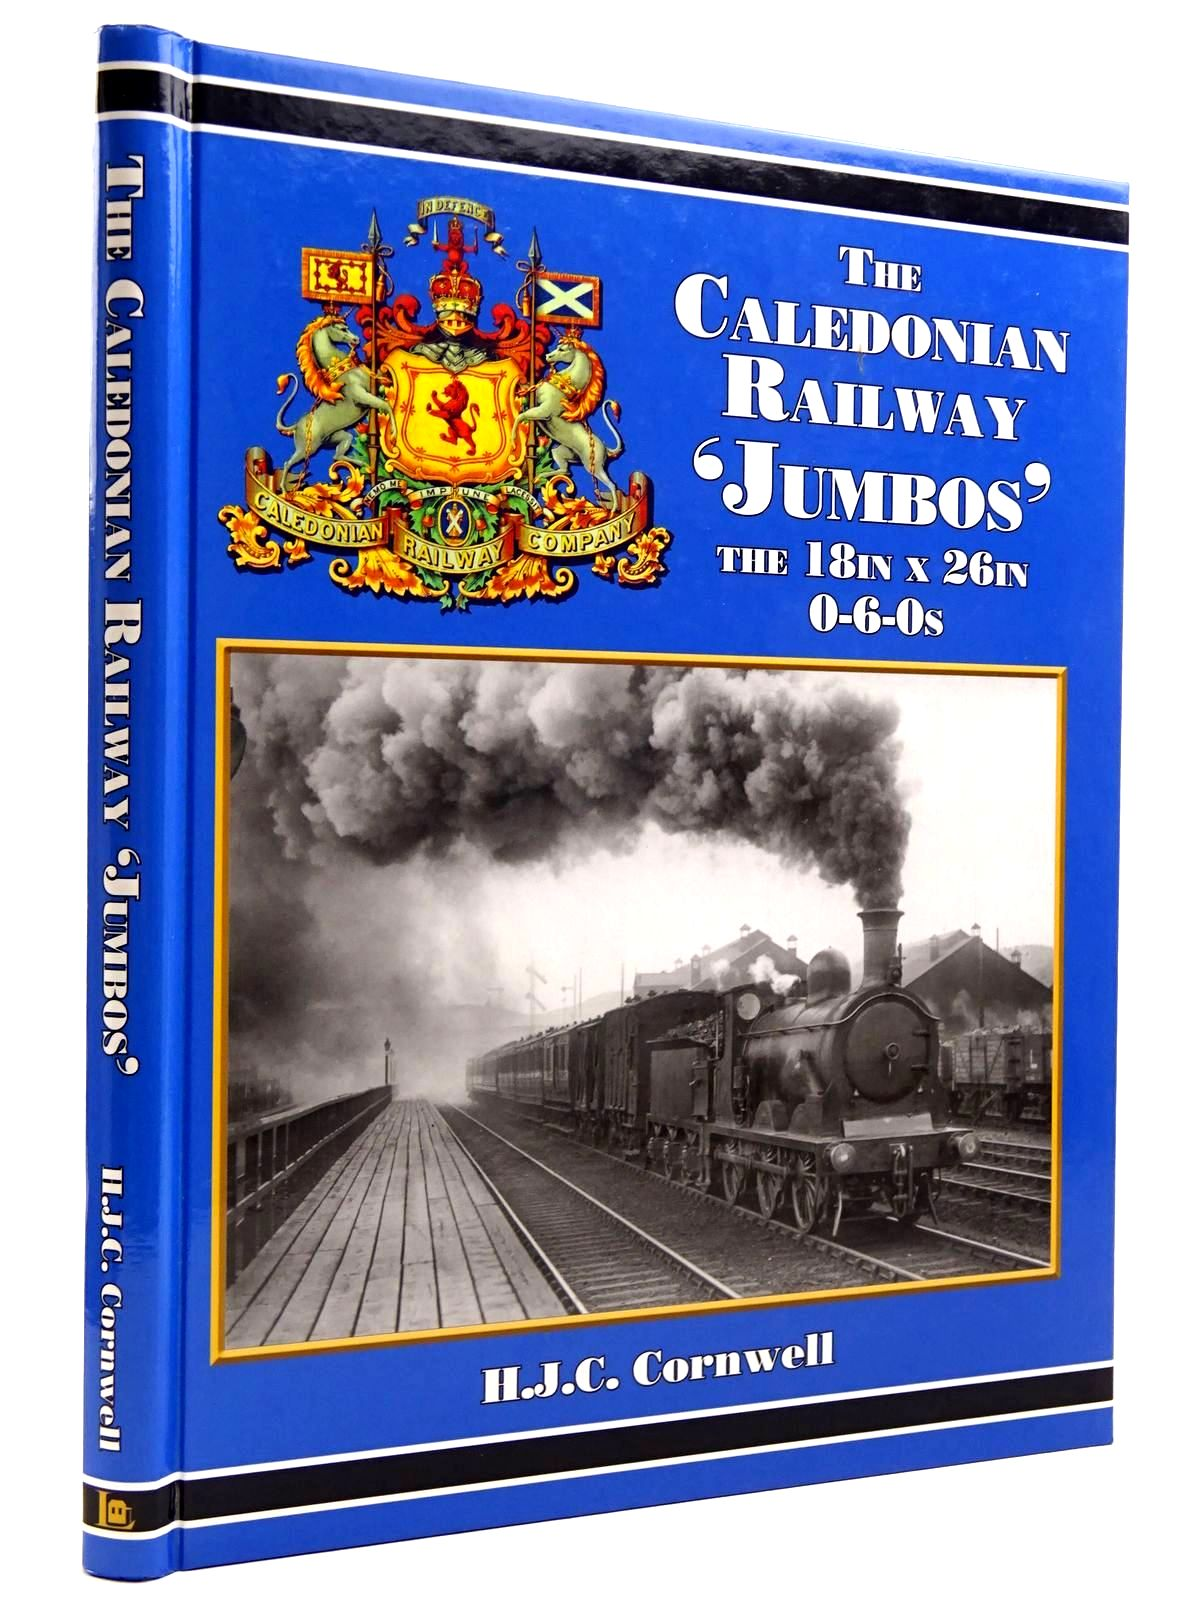 Photo of THE CALEDONIAN RAILWAY 'JUMBOS' THE 18IN X 26IN 0-6-0S- Stock Number: 2131501